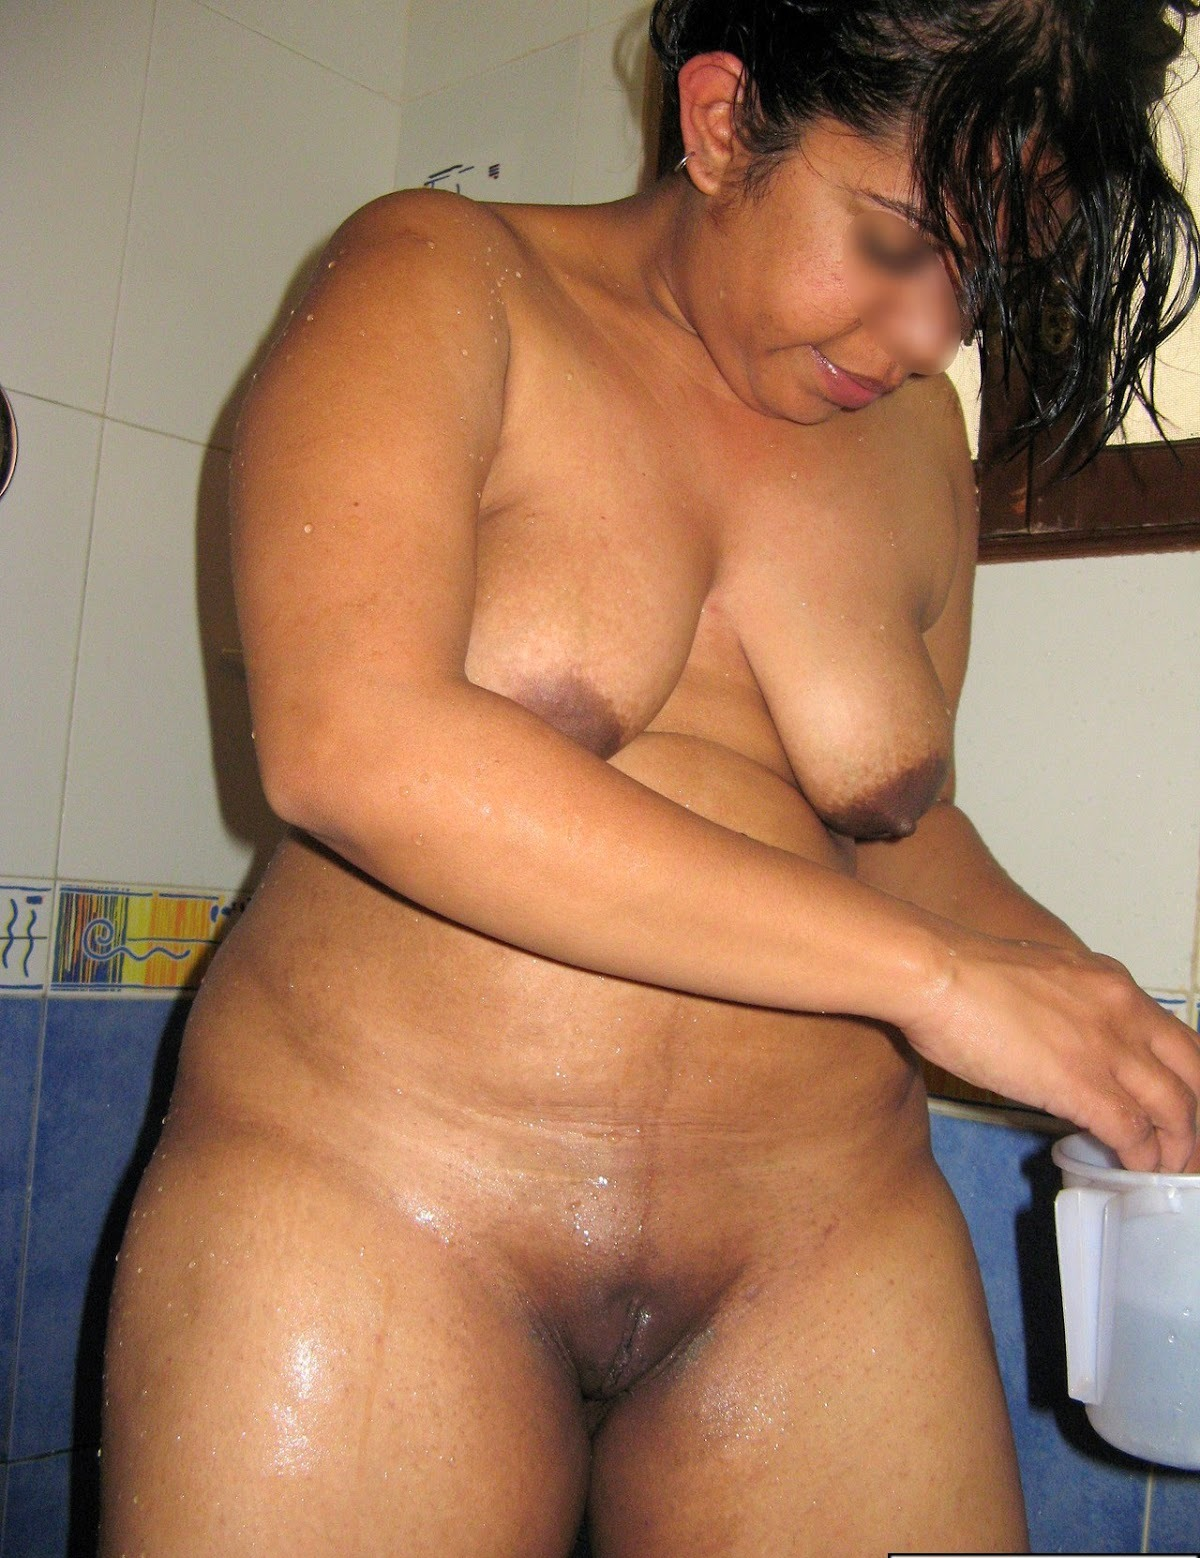 American housewives nude bengali